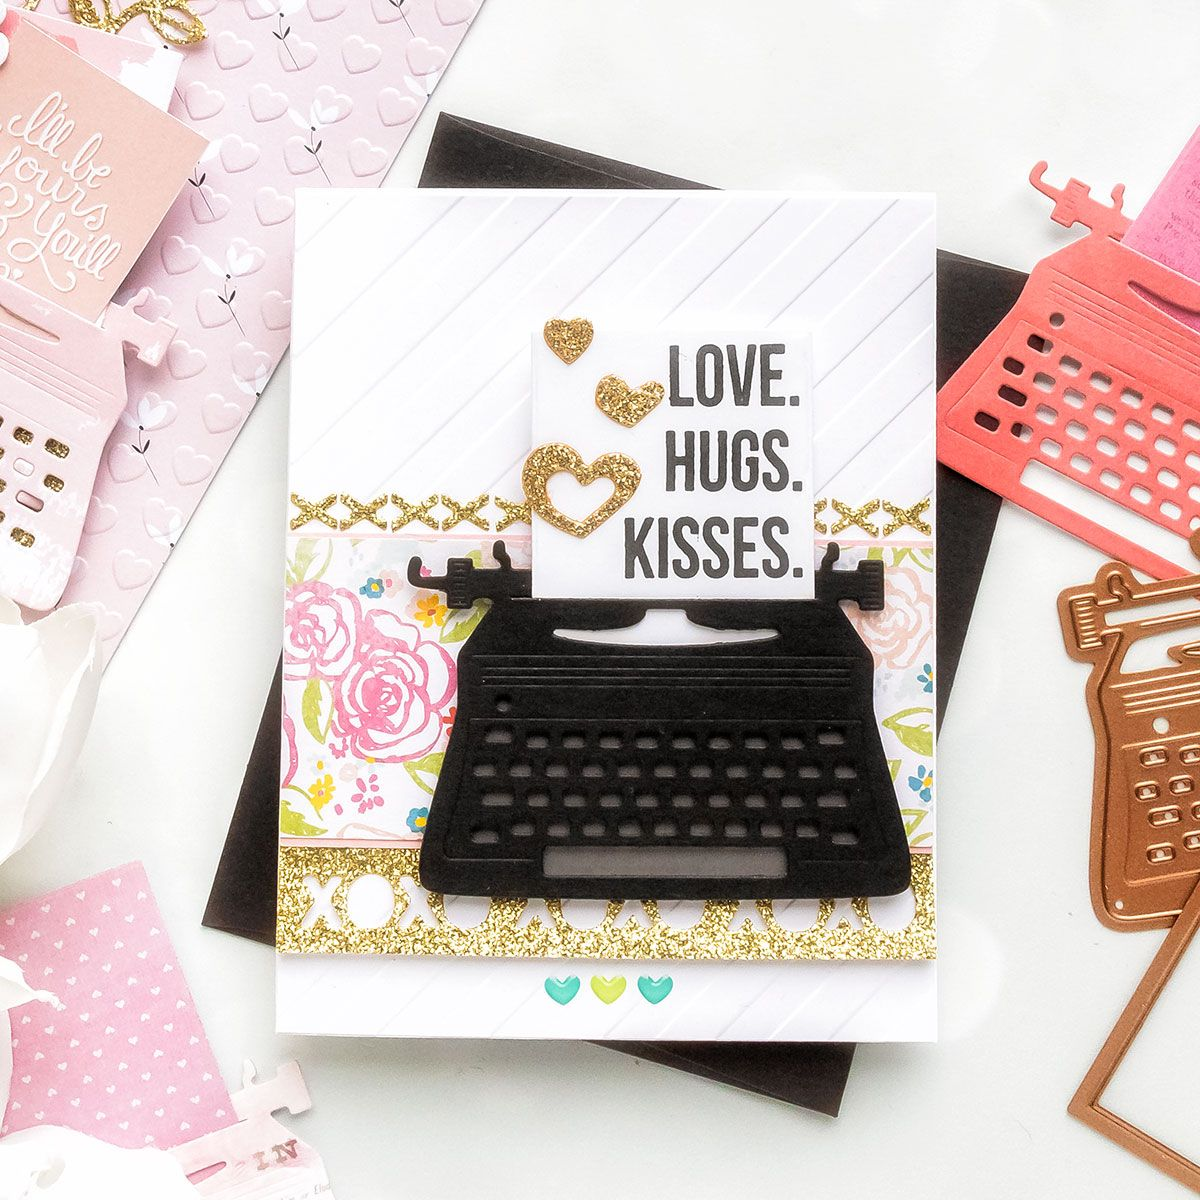 You're My Type - Spellbinders January 2019 Card Kit of the Month Typewriter Die Cards. Love, Hugs, Kisses Card by Yana Smakula for Spellbinders #cardkit